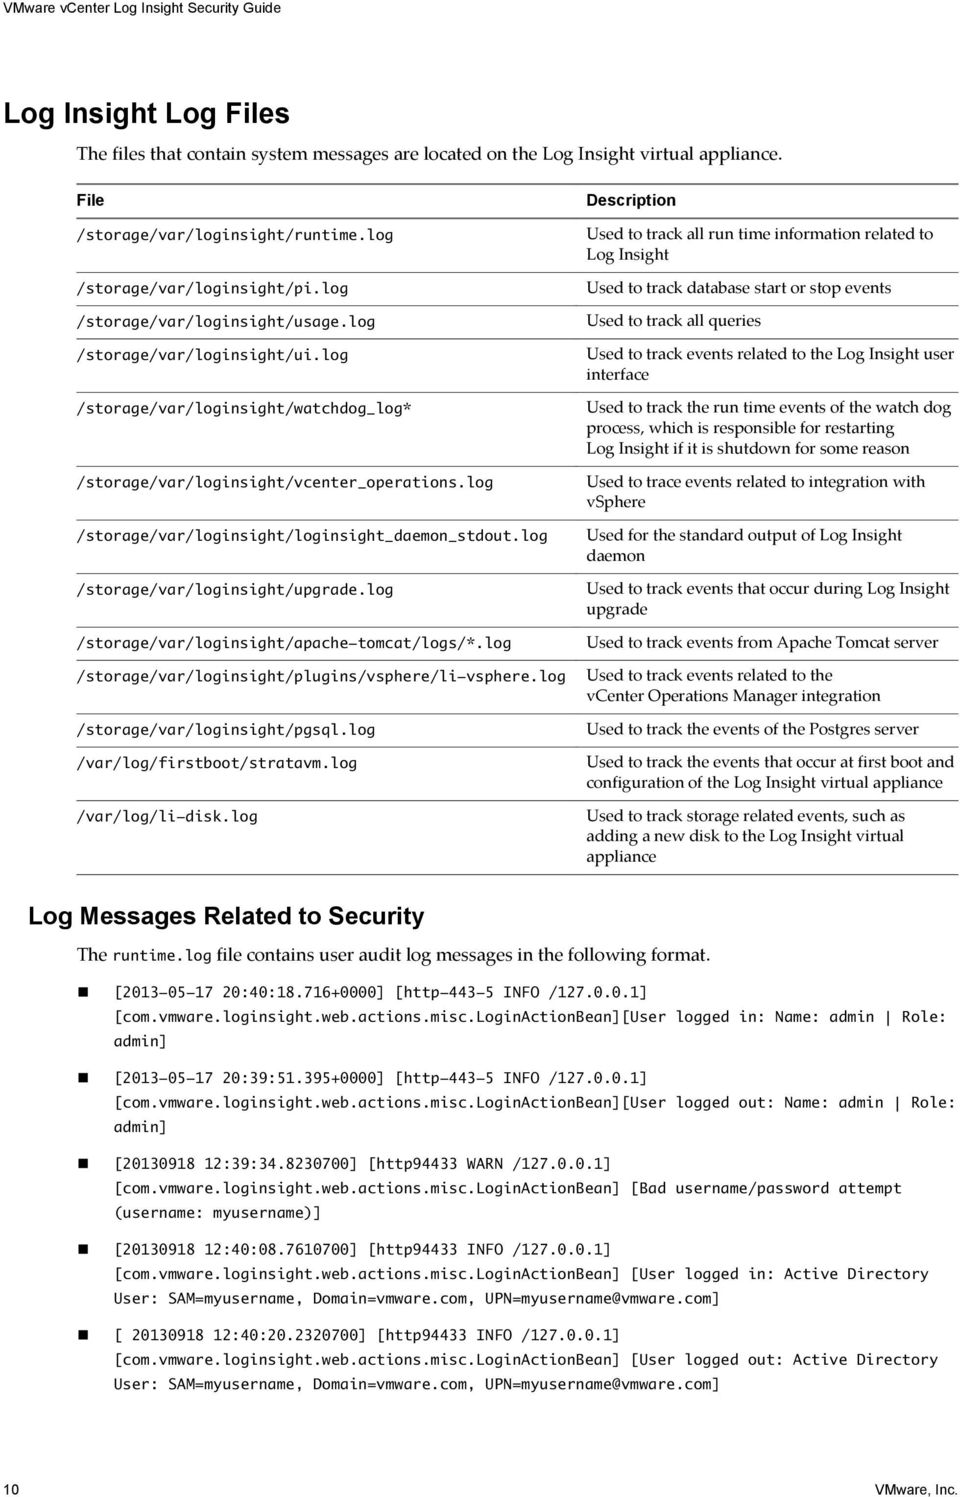 log /storage/var/loginsight/loginsight_daemon_stdout.log /storage/var/loginsight/upgrade.log /storage/var/loginsight/apache-tomcat/logs/*.log /storage/var/loginsight/plugins/vsphere/li-vsphere.